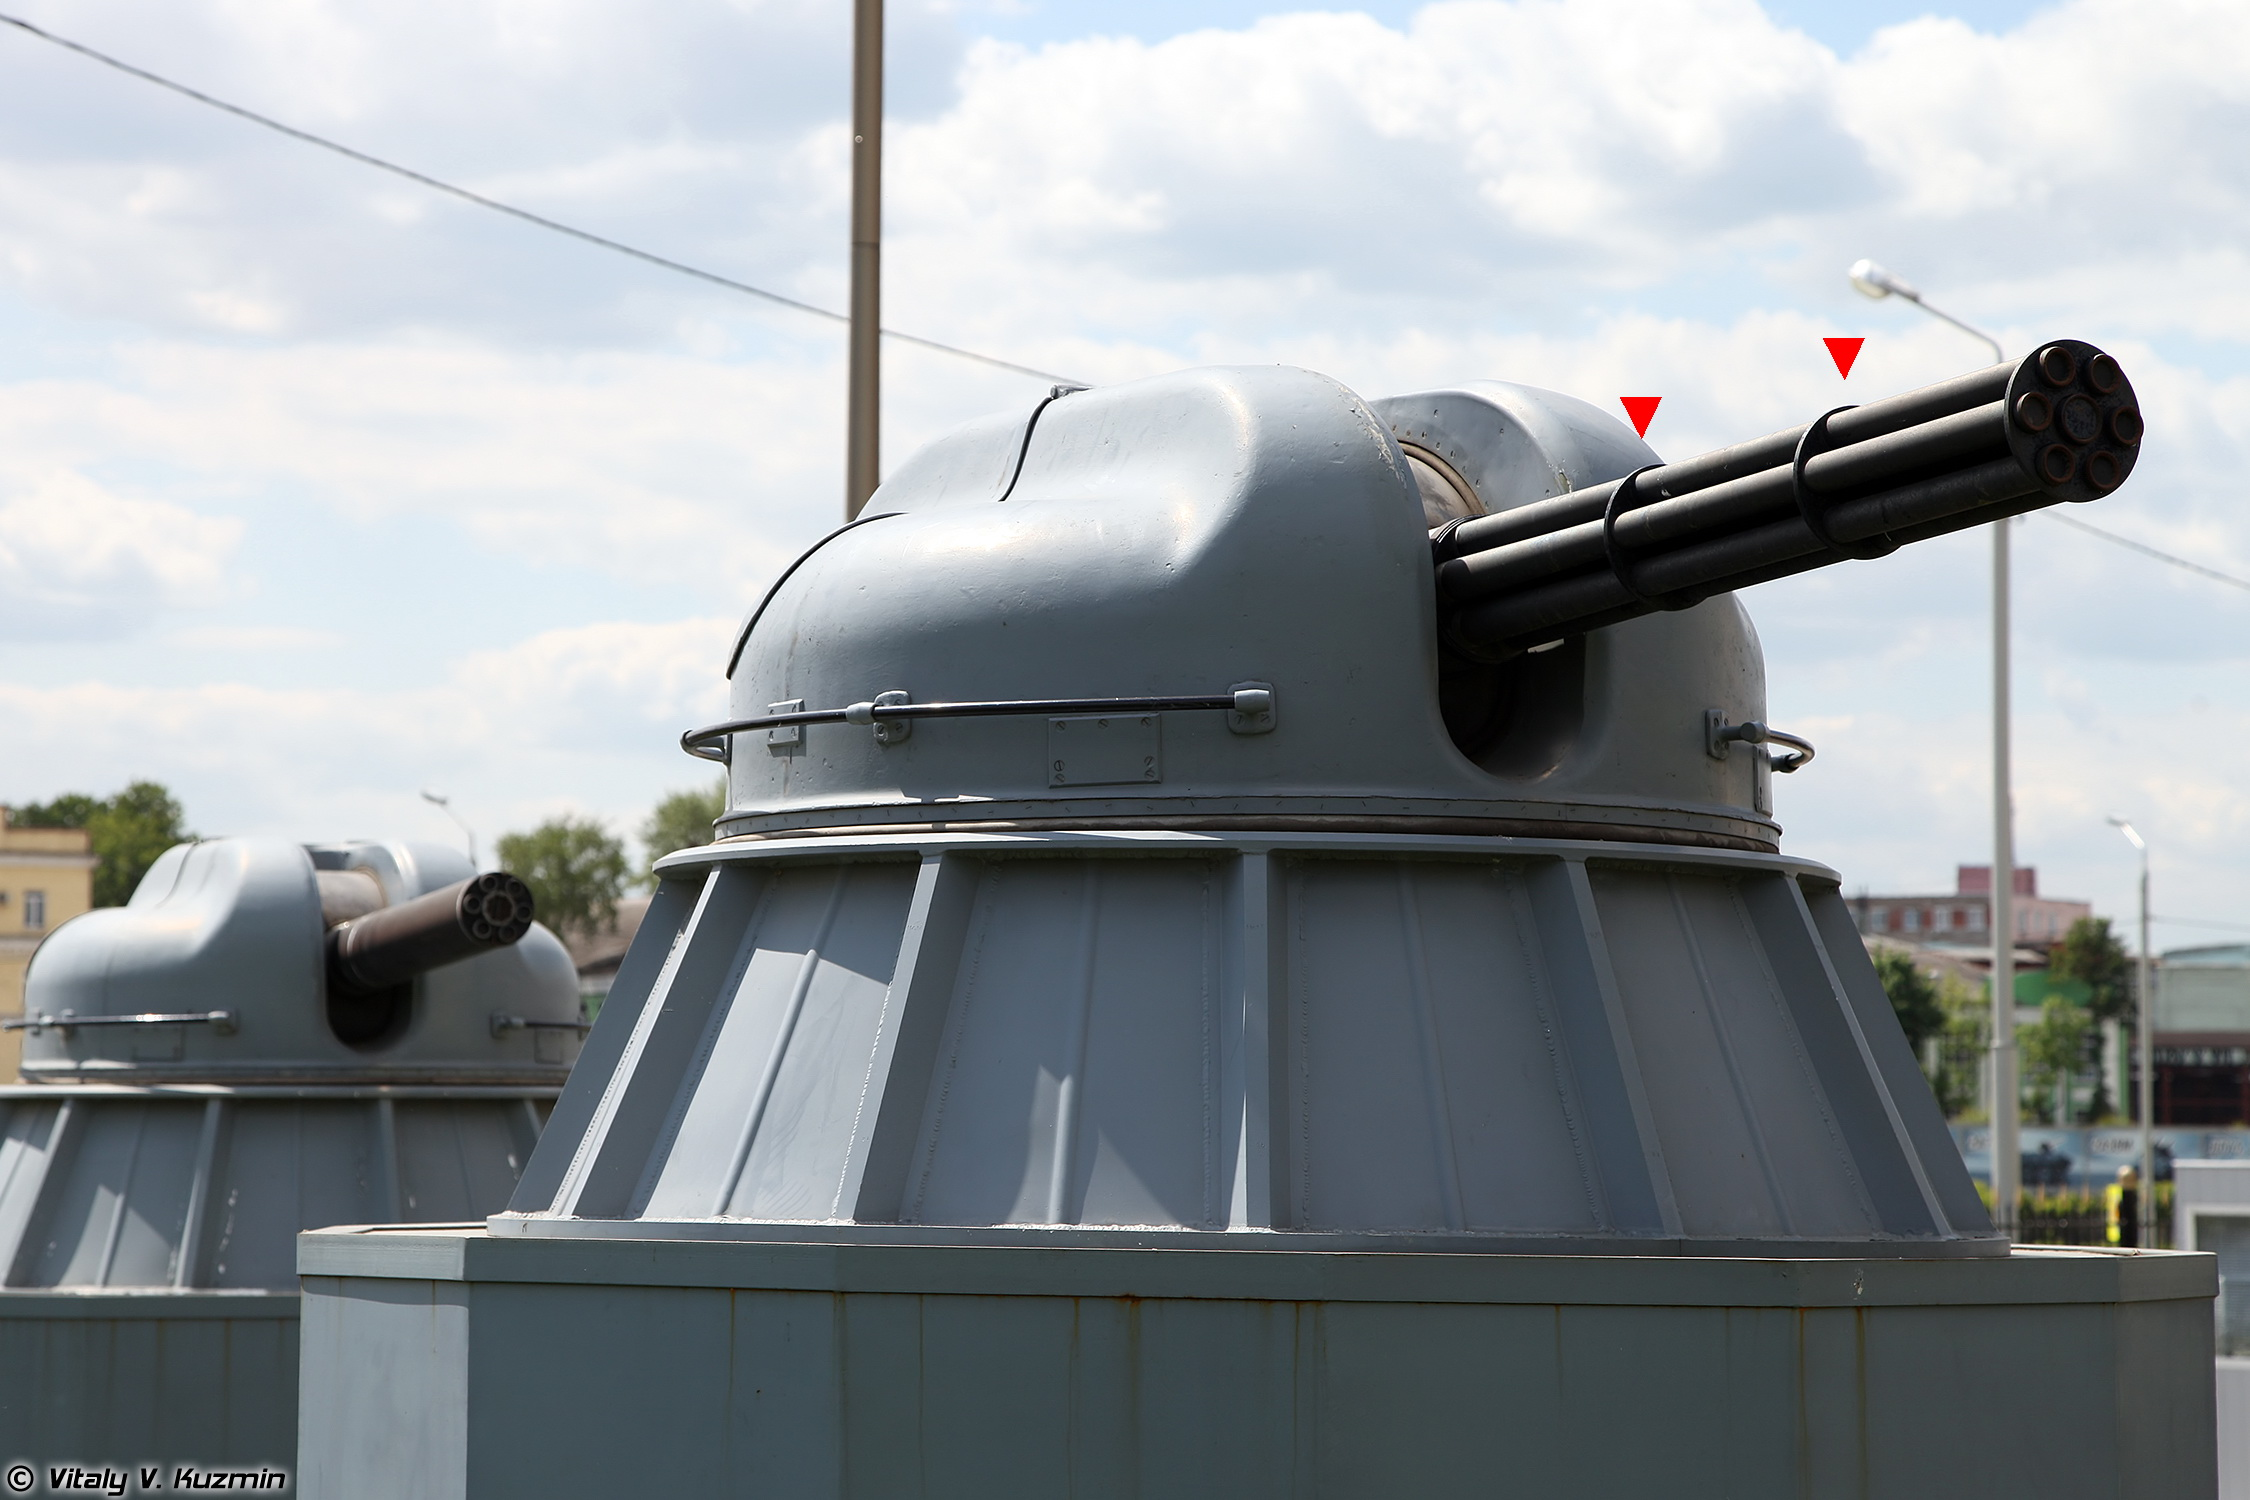 30mm_cannon_AK-306_at_Tula_State_Arms_Museum_-_2016_01-2.jpg